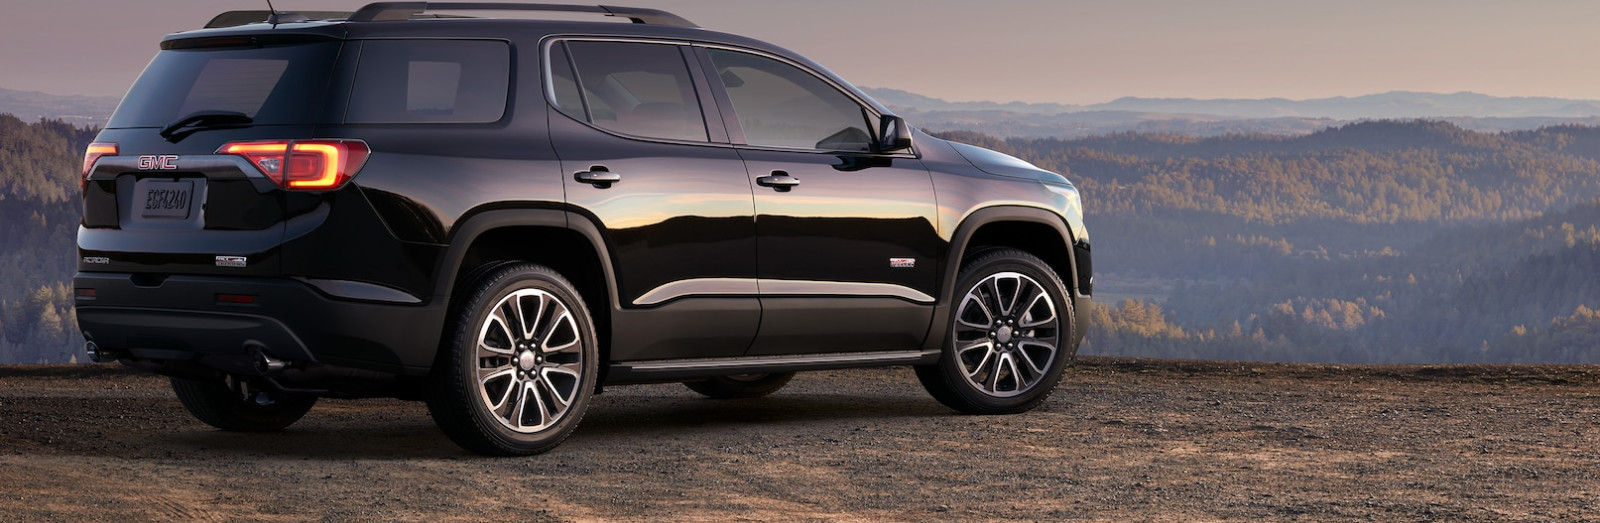 2019 GMC Acadia Financing near Aberdeen, SD